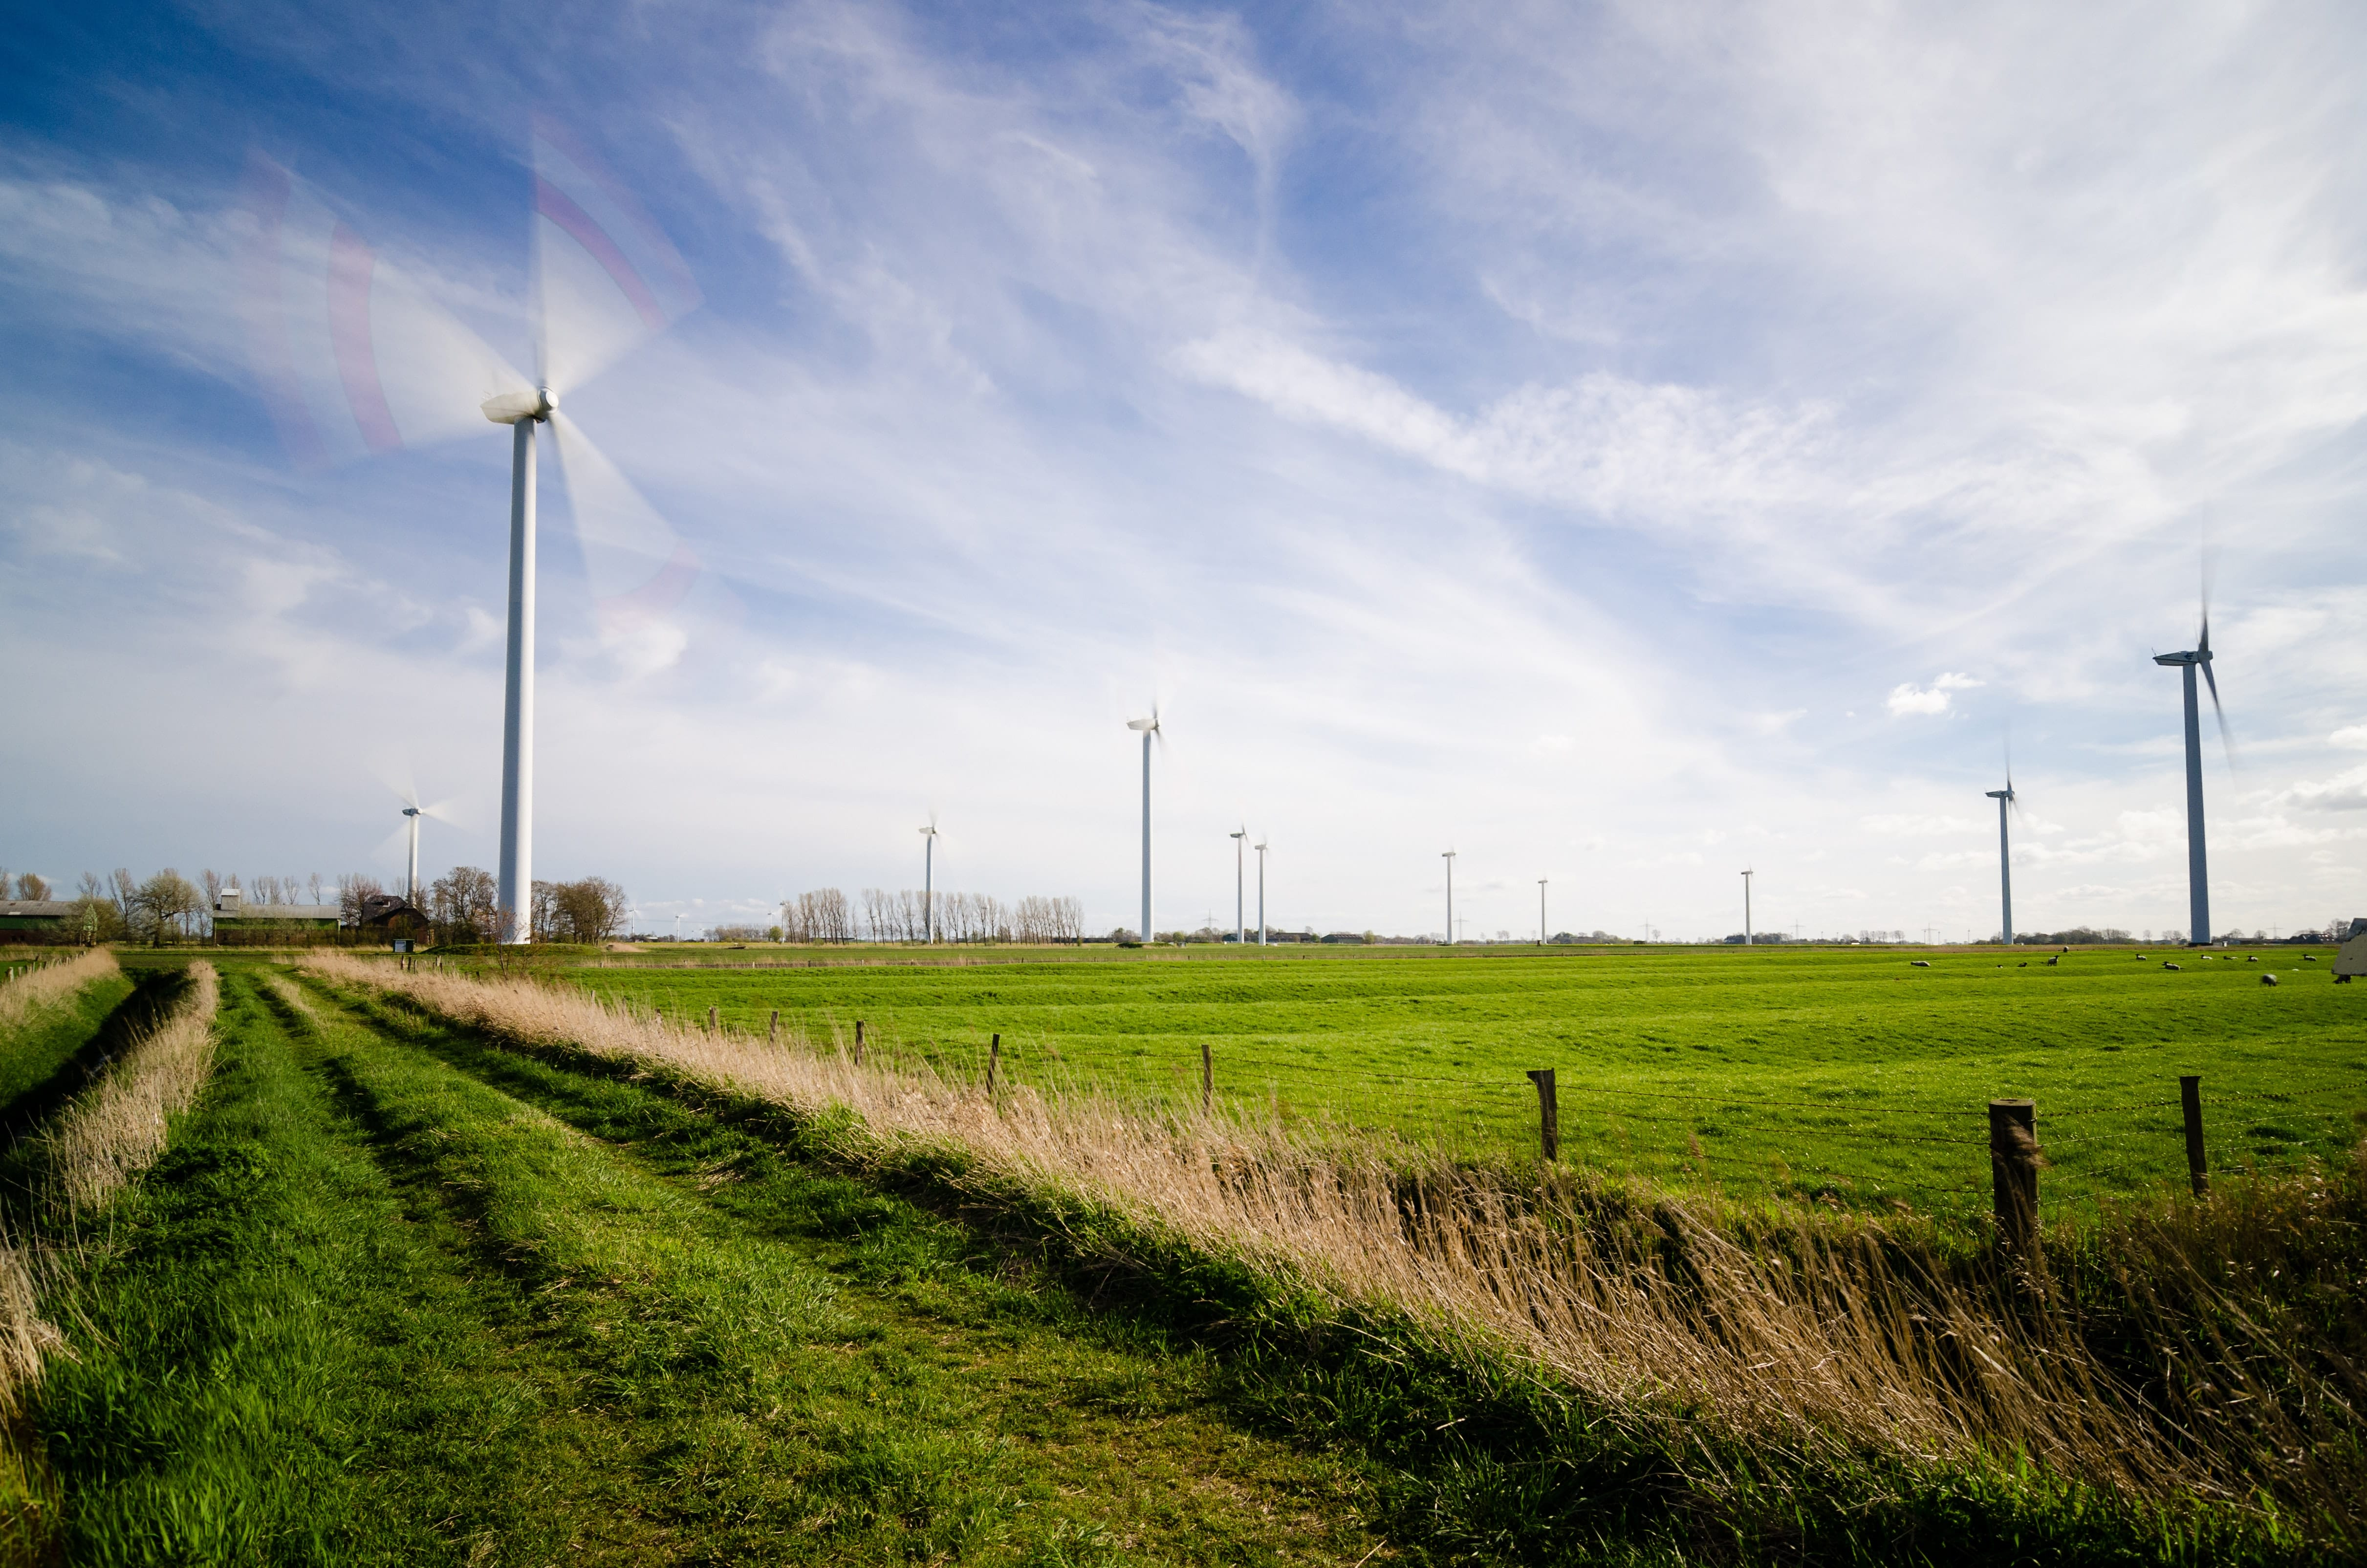 Spinning wind turbine (Pic source: Pexels)